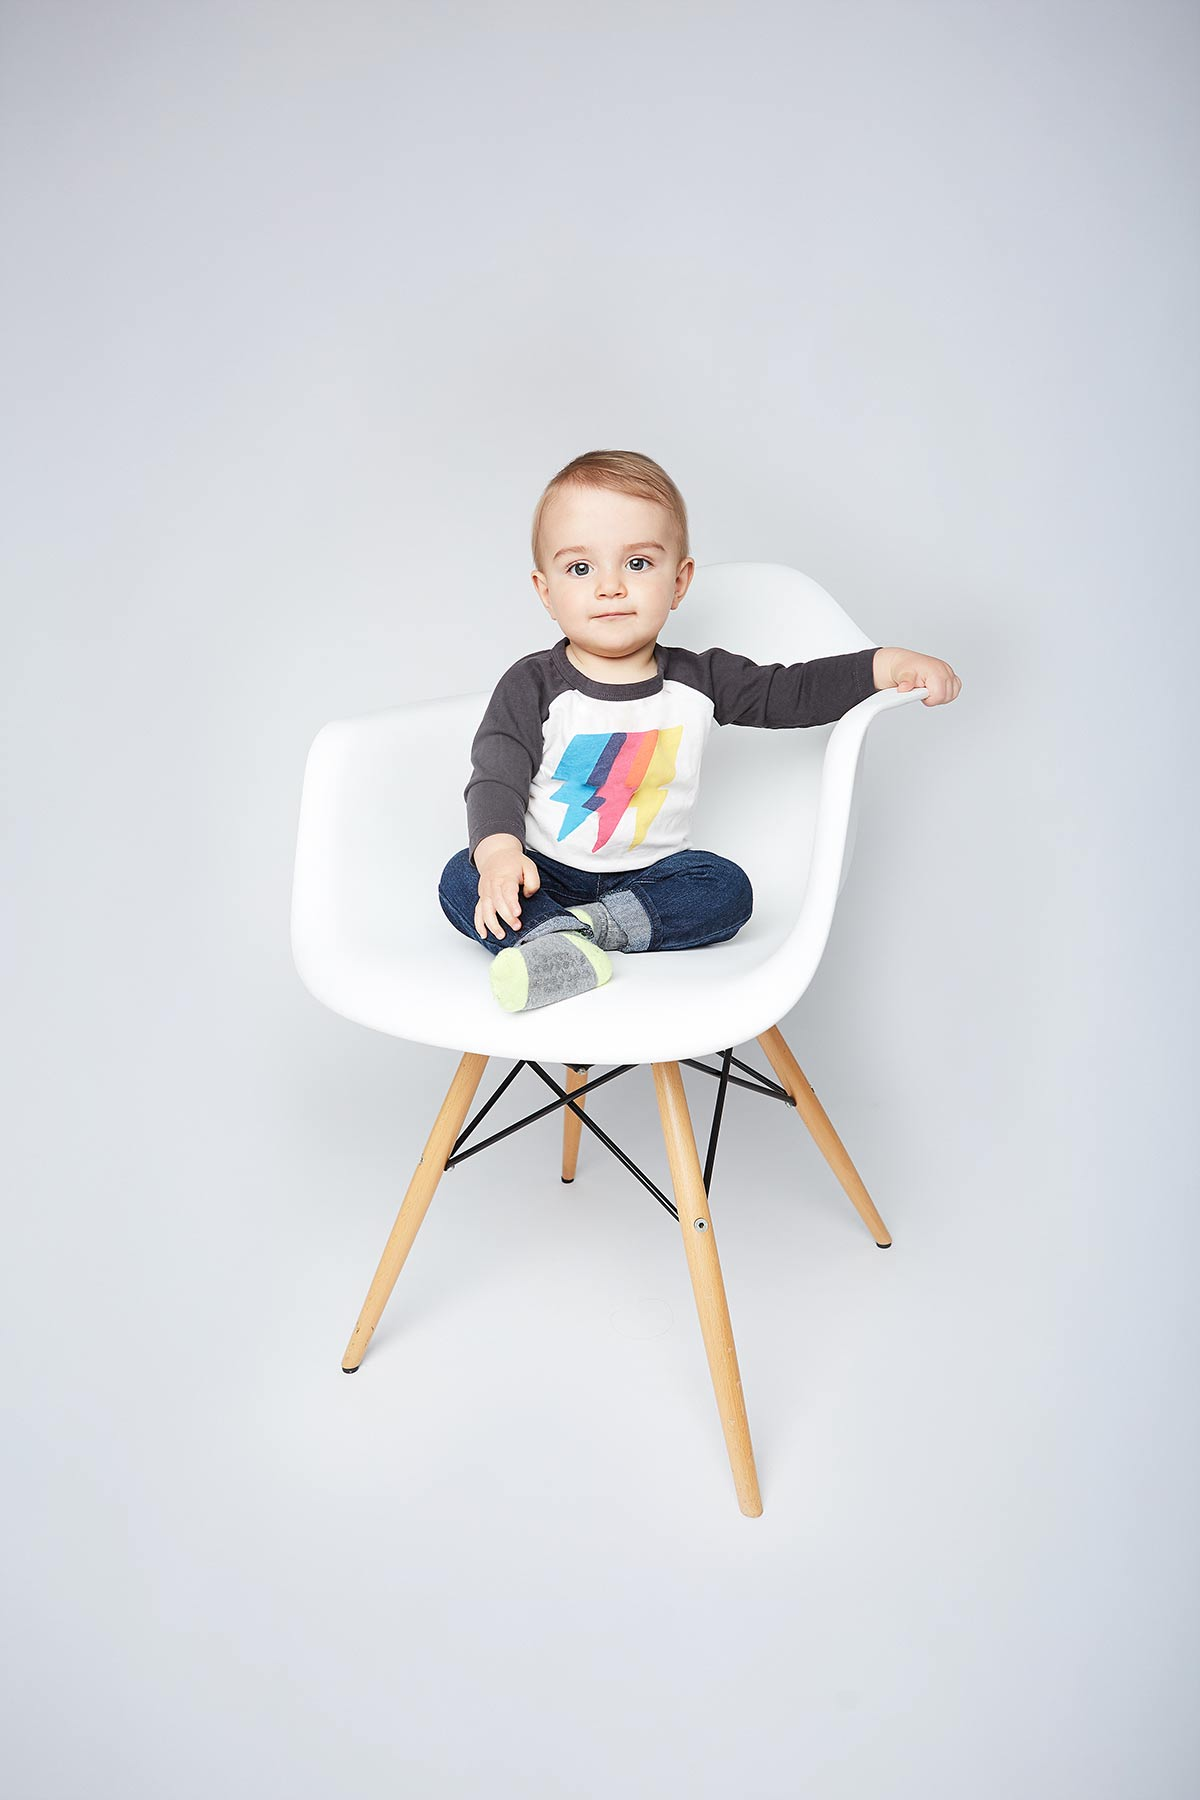 Chicago_Kids_Baby_Photo_Studio_Portraits_Modern_Family_Photographer_Tiny_Space_Studio